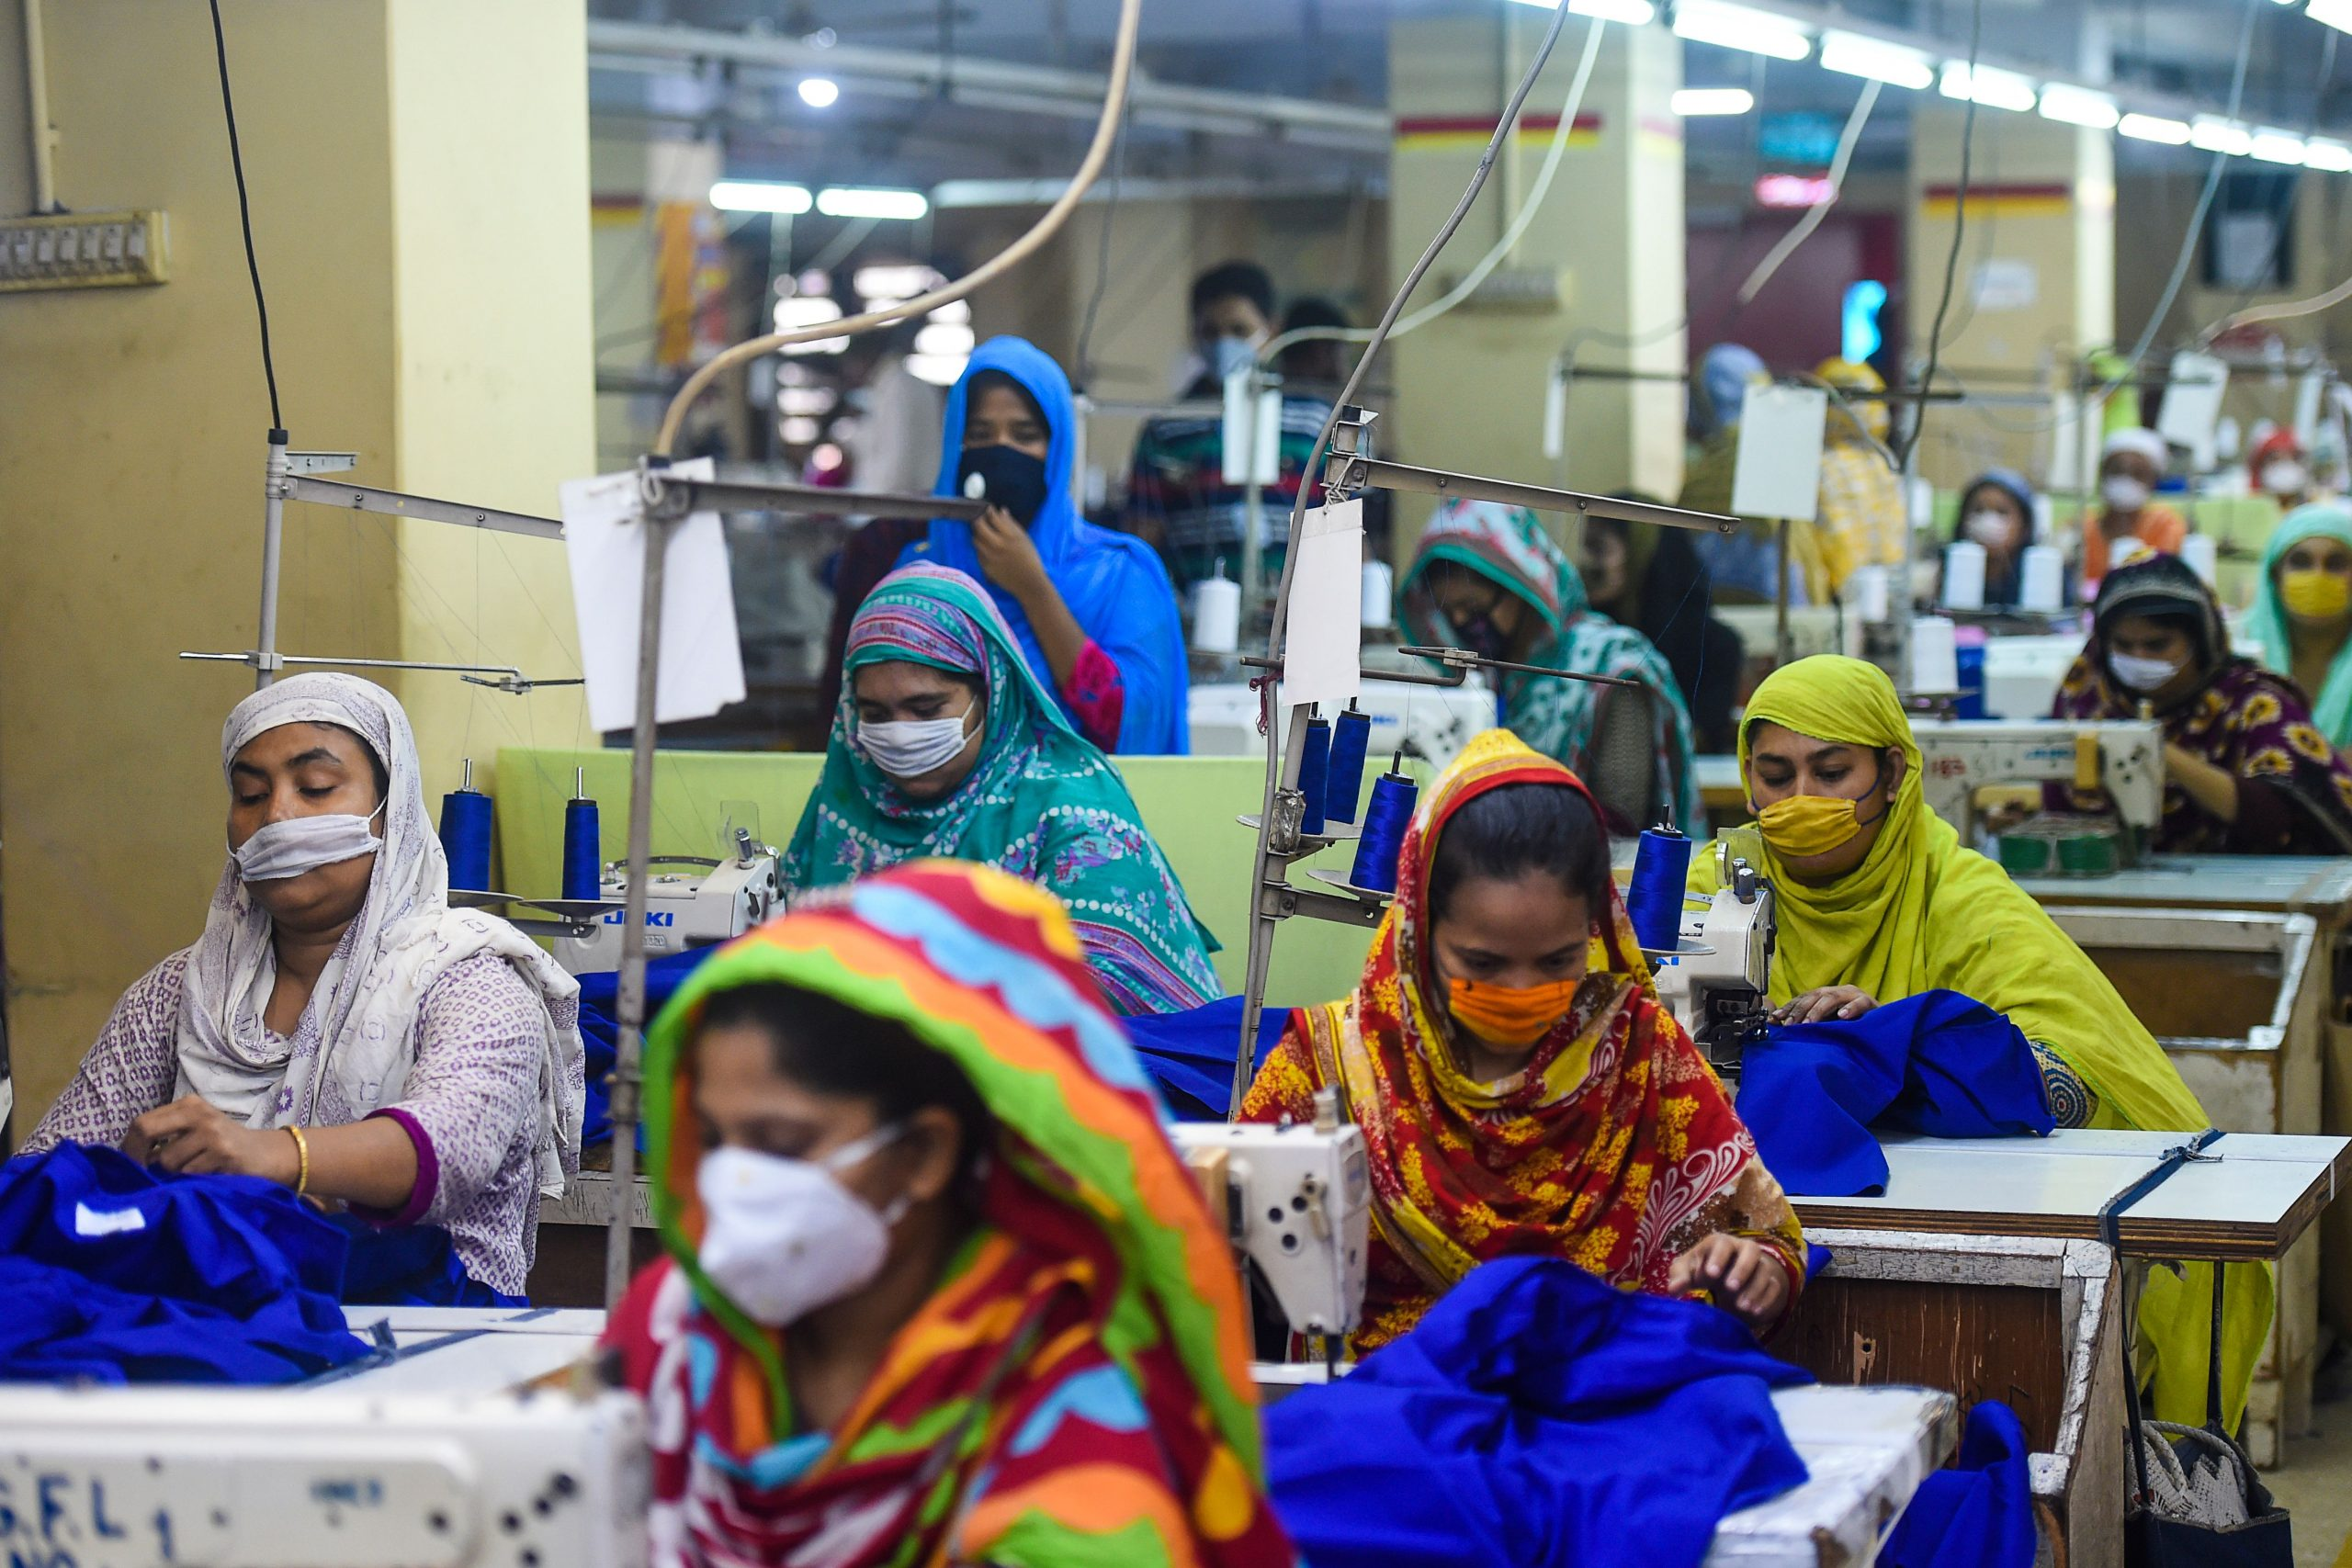 Labourers wearing facemasks work in a garment factory during a government-imposed lockdown as a preventive measure against the spread of the COVID-19 coronavirus in Dhaka on May 2, 2020. (Photo by MUNIR UZ ZAMAN / AFP) (Photo by MUNIR UZ ZAMAN/AFP via Getty Images)